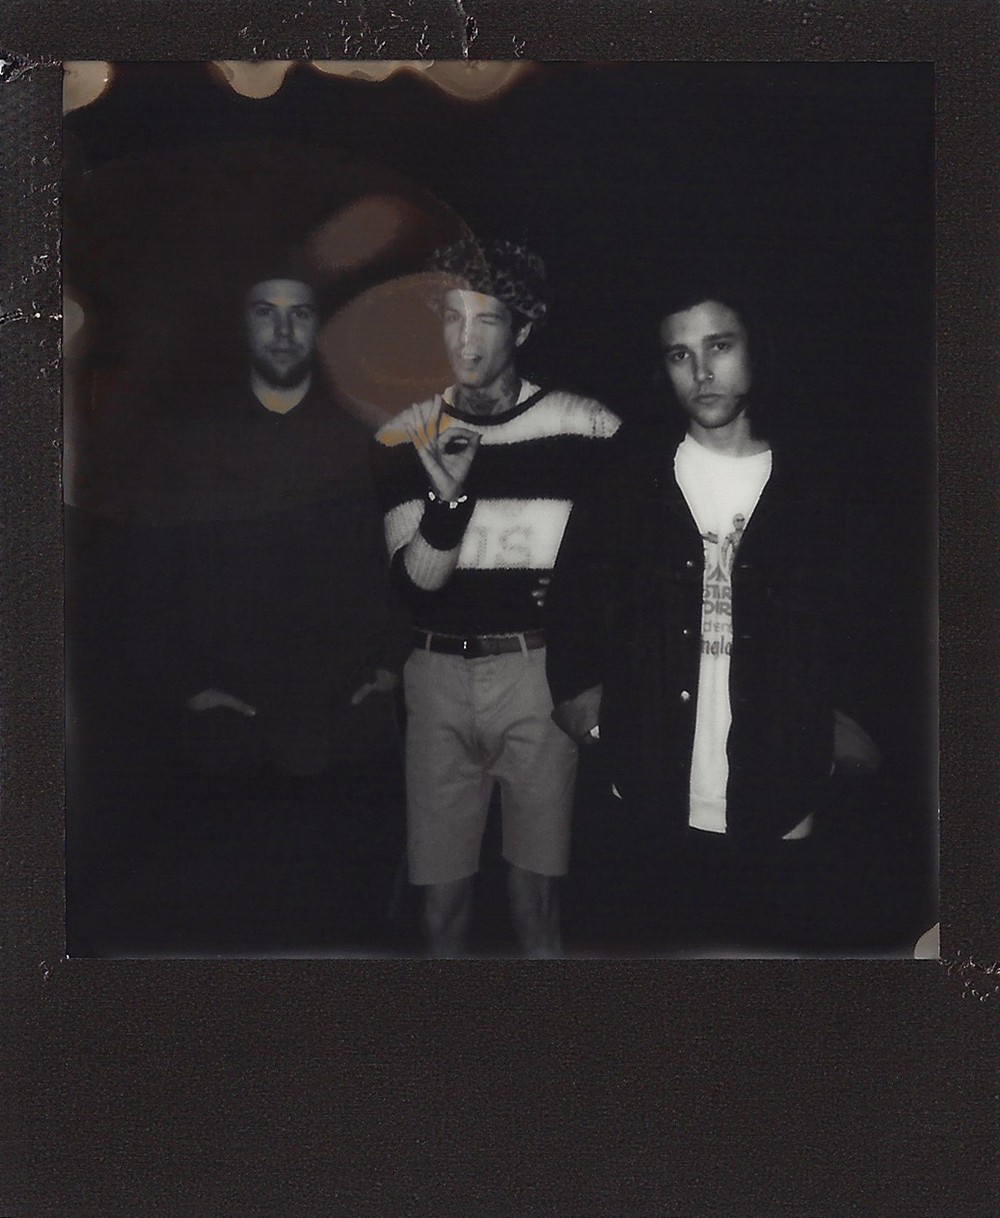 The-NBHD-Polaroid-6-casenruiz.jpg